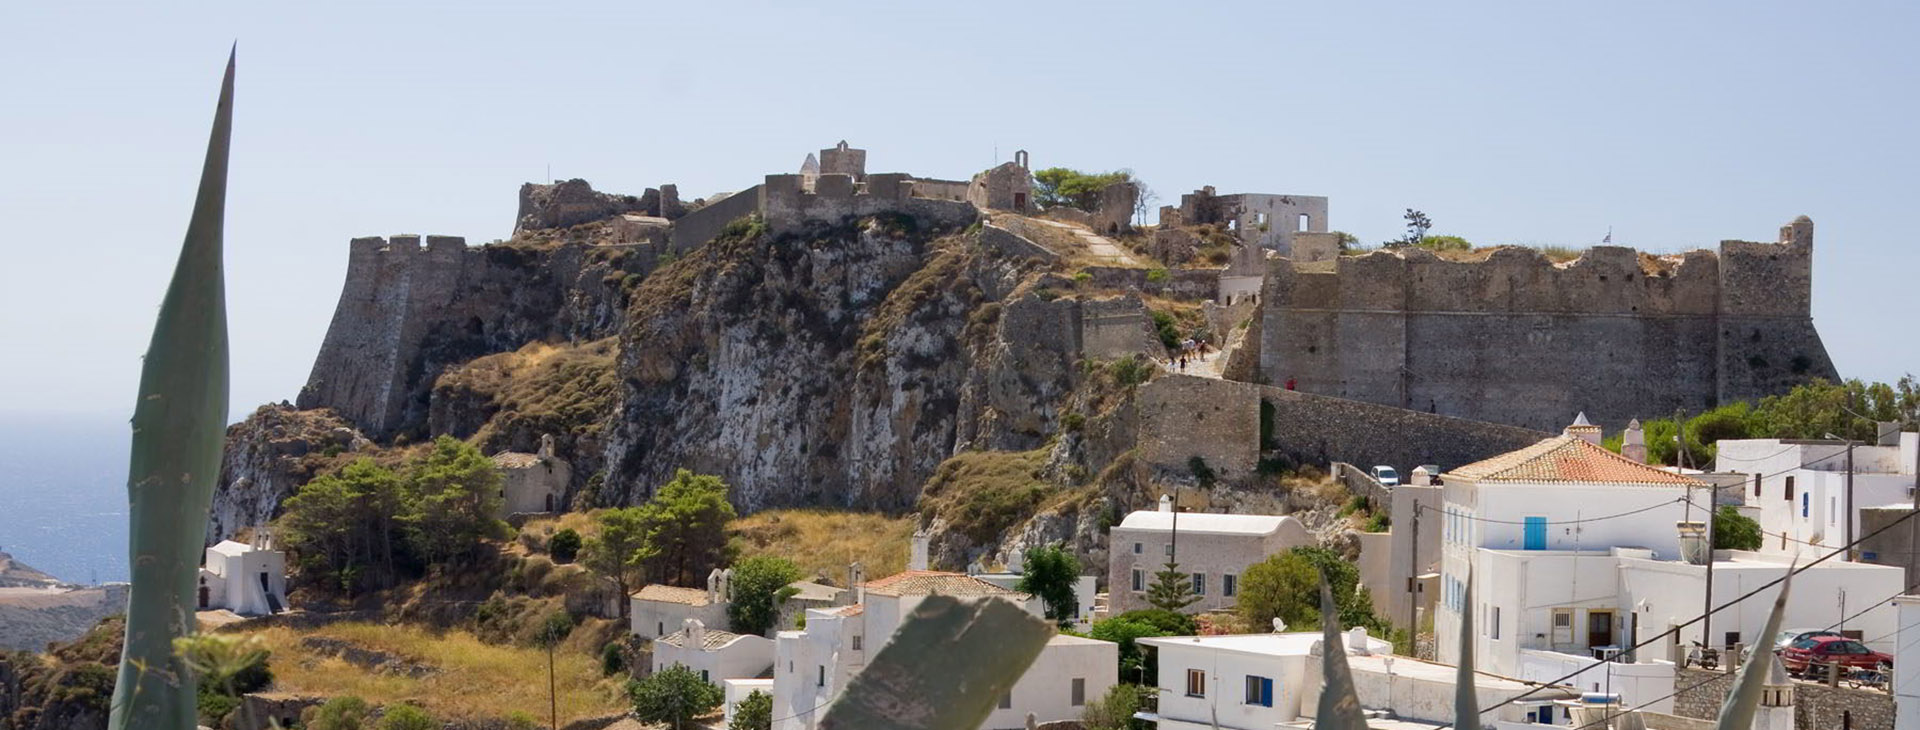 The castle of the capital town (Chora) of Kythira island